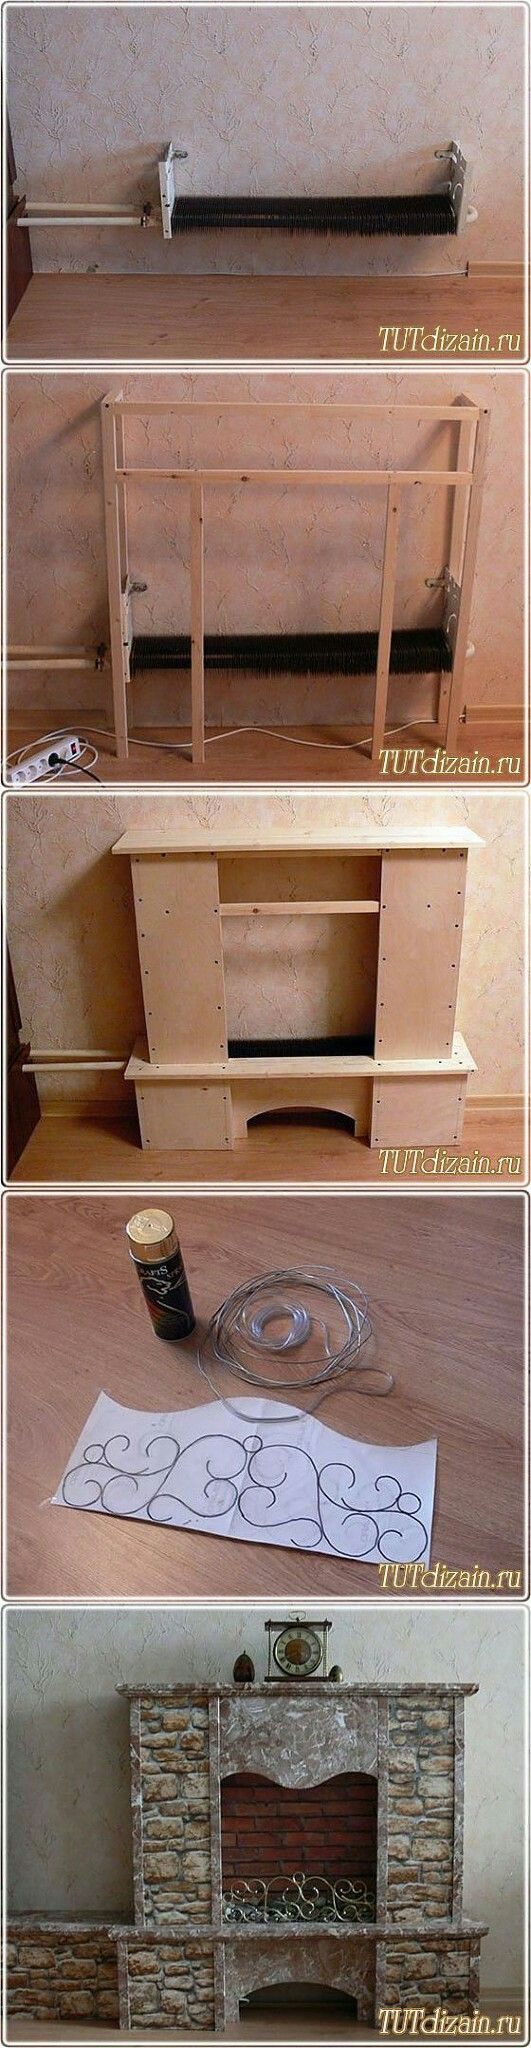 27 best камин images on pinterest fireplaces fake fireplace and